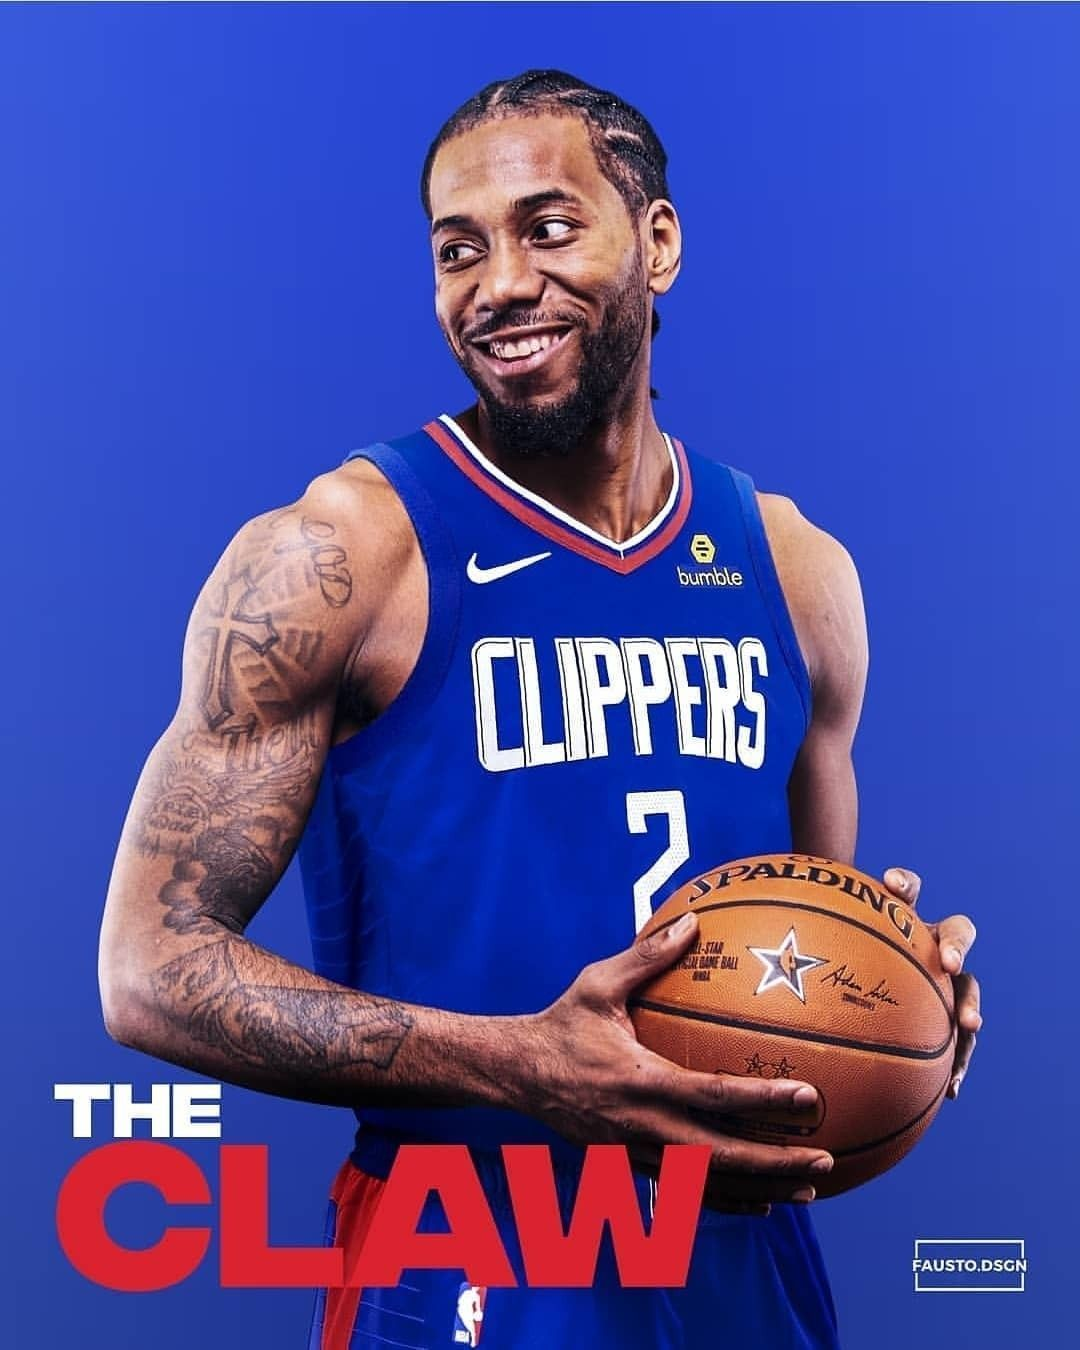 Kawhi Lenard Picks Clippers After Historic Commitment To Acqurie Paul George From Okc Culture News Nba Players Best Nba Players La Clippers